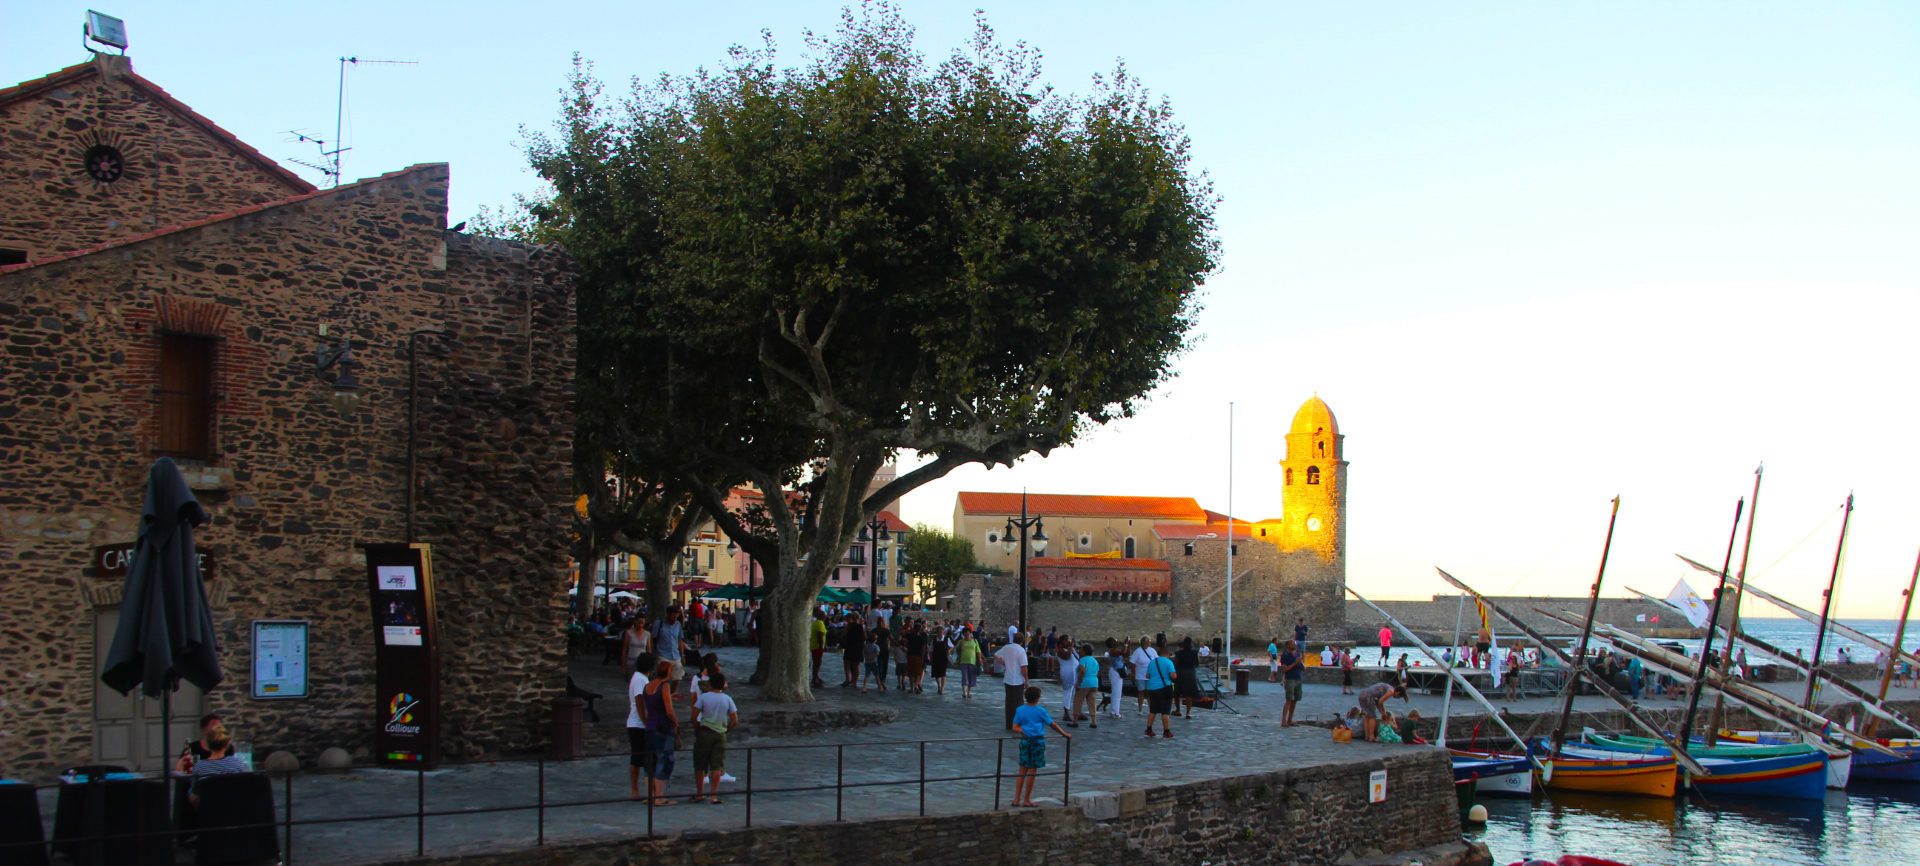 Totem interactif sur le Port de Collioure